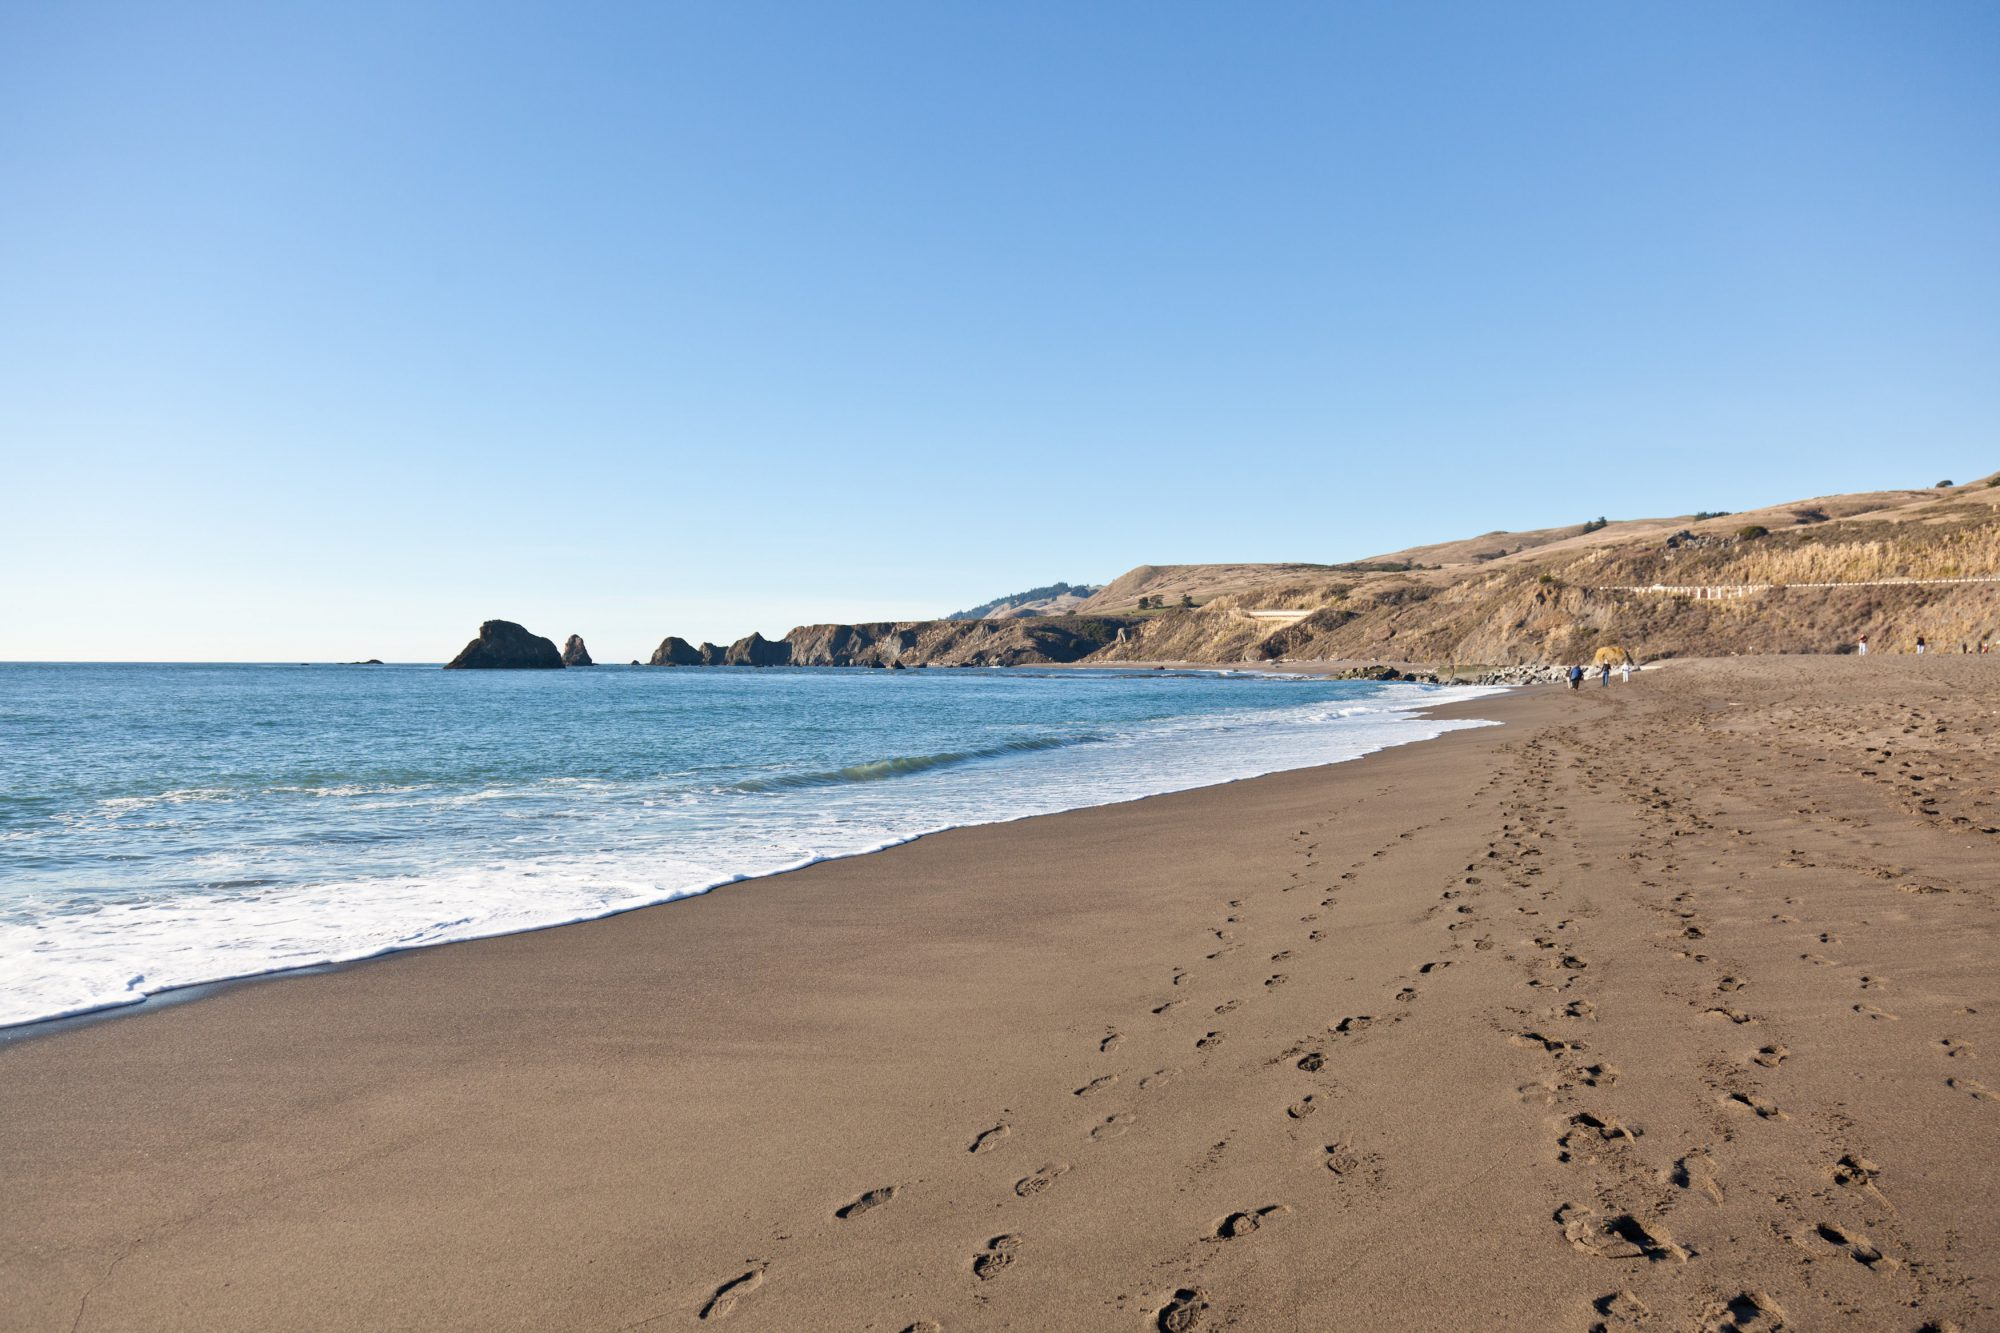 A picture of the sonoma beach